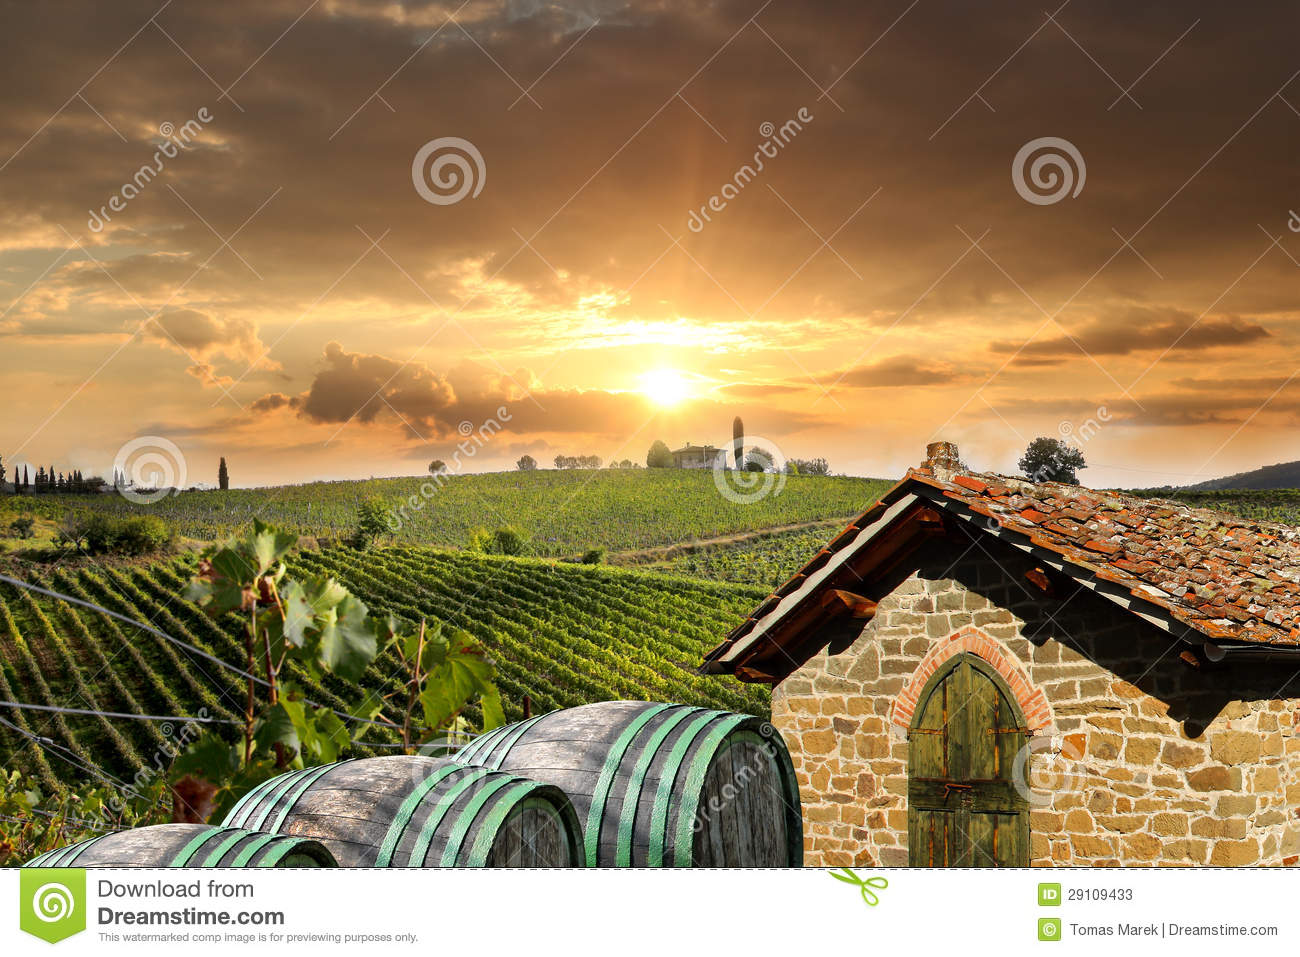 Vineyeard in Chianti, Tuscany, Italy, famous lands